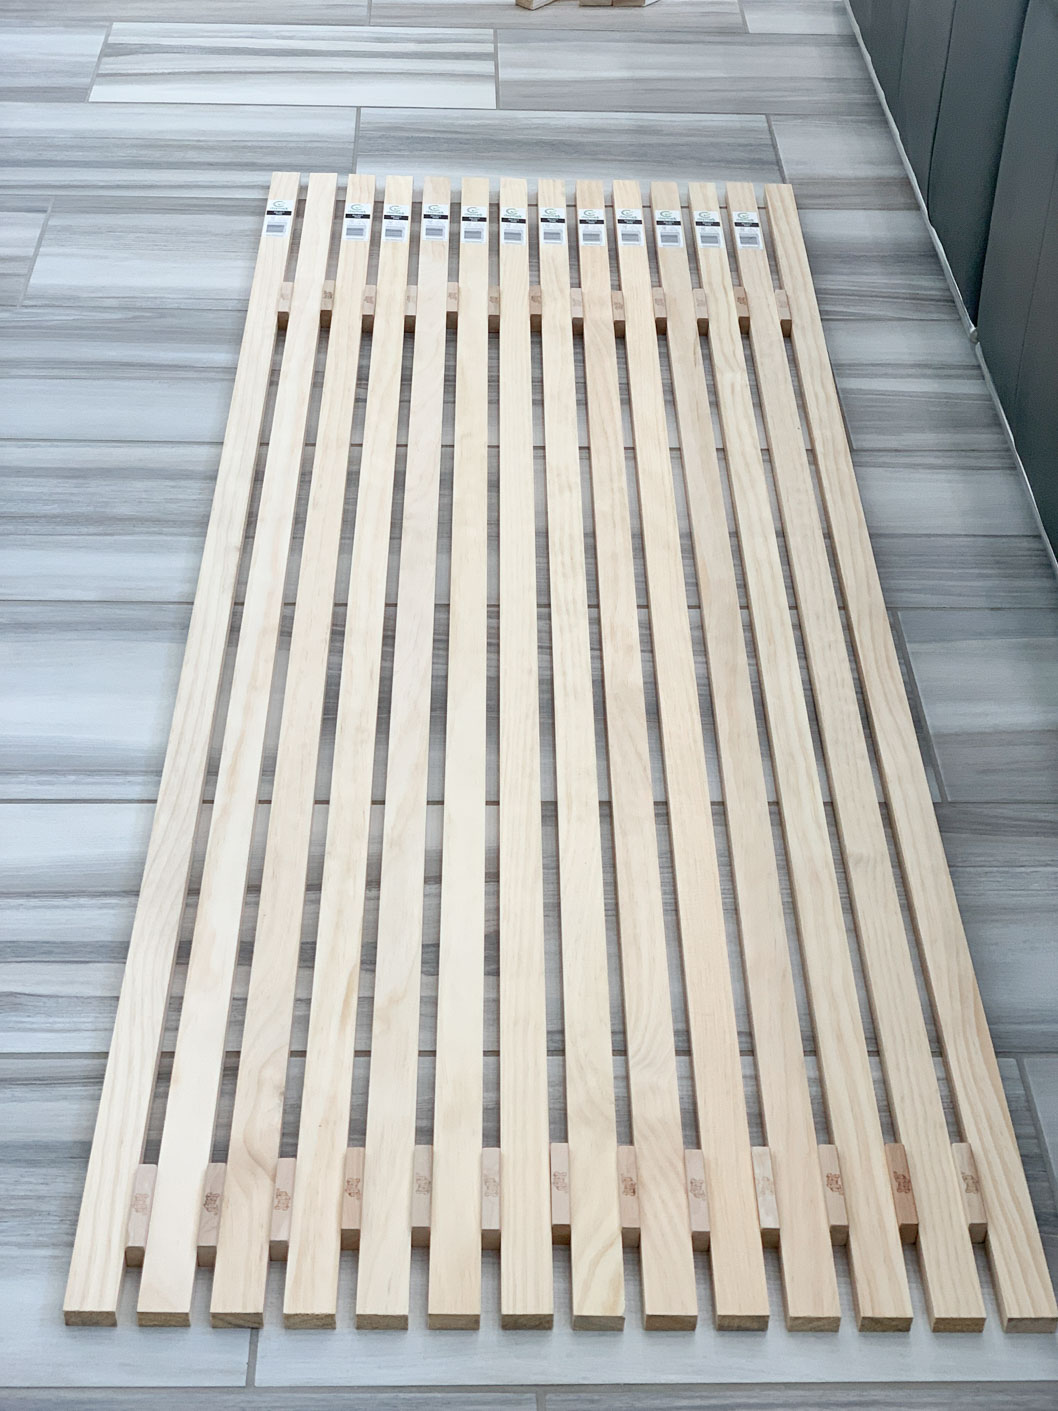 Vertical slat wall pieces